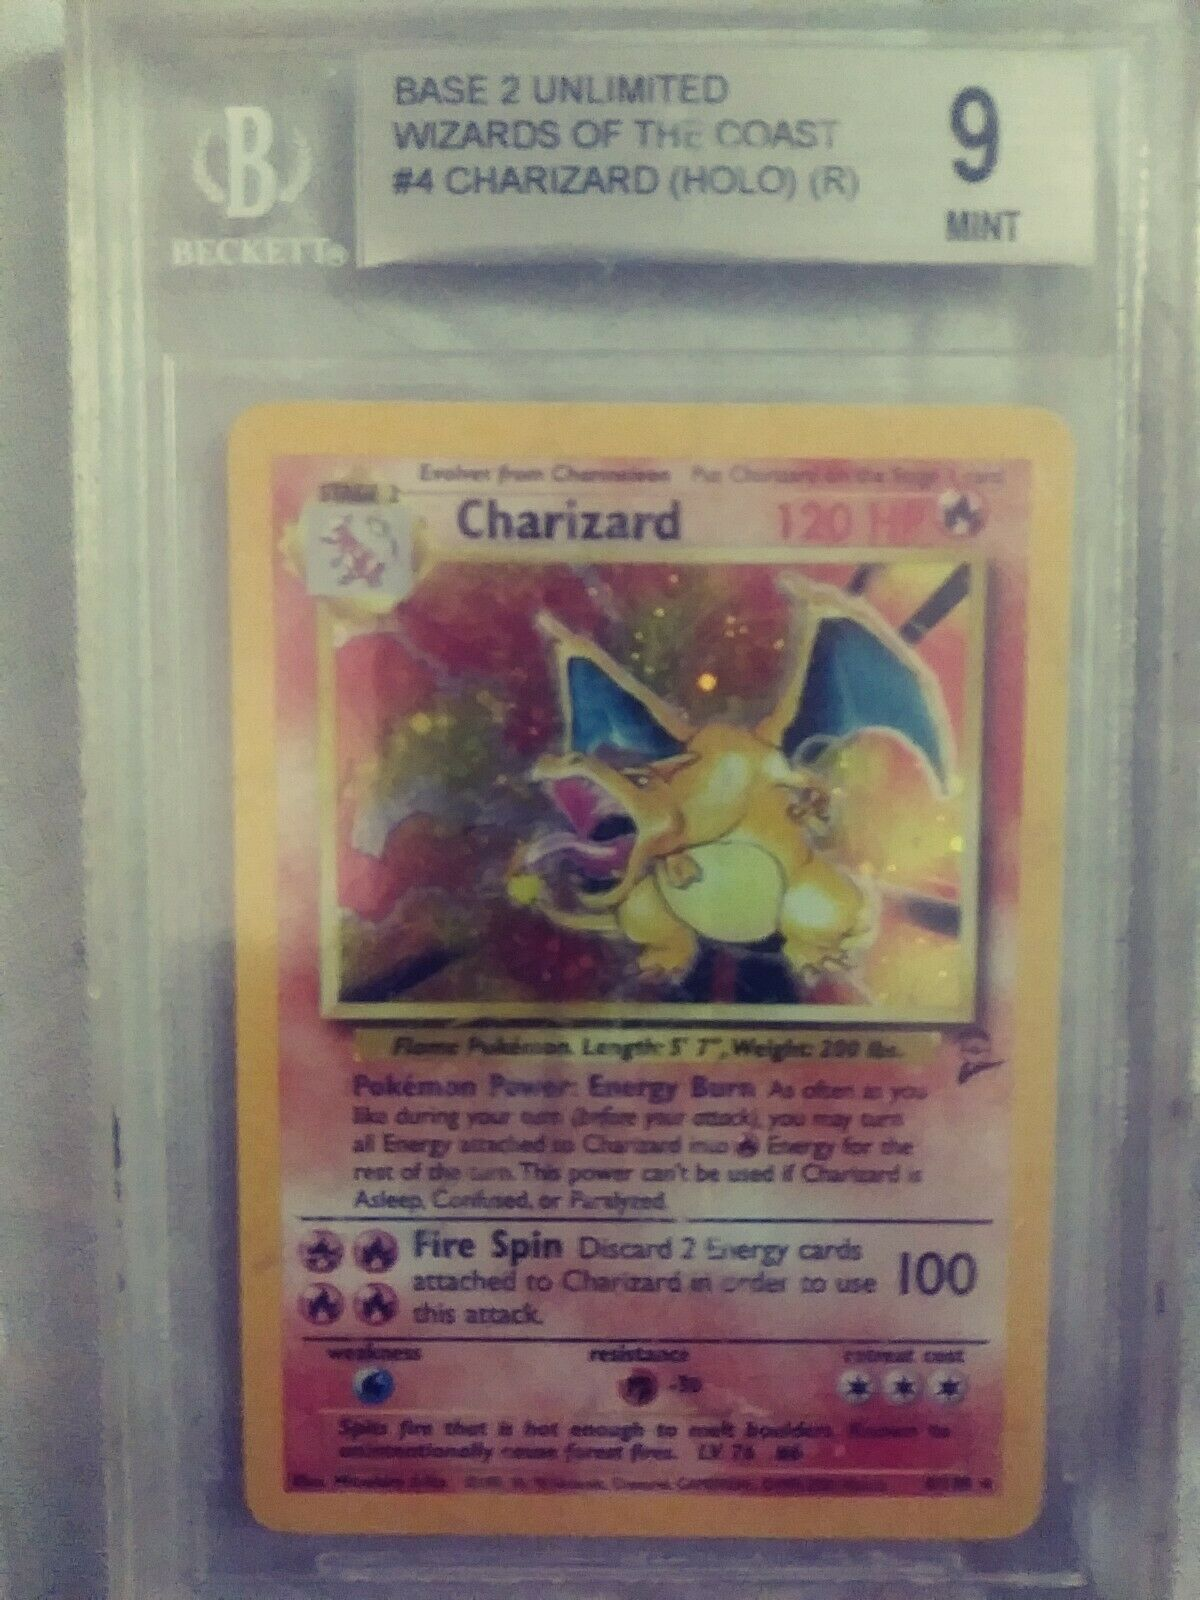 Charizard Base 2 Unlimited Unlimited Unlimited Wizards Of The Coast Holographique 9 Mint Pokemon 35d6bf